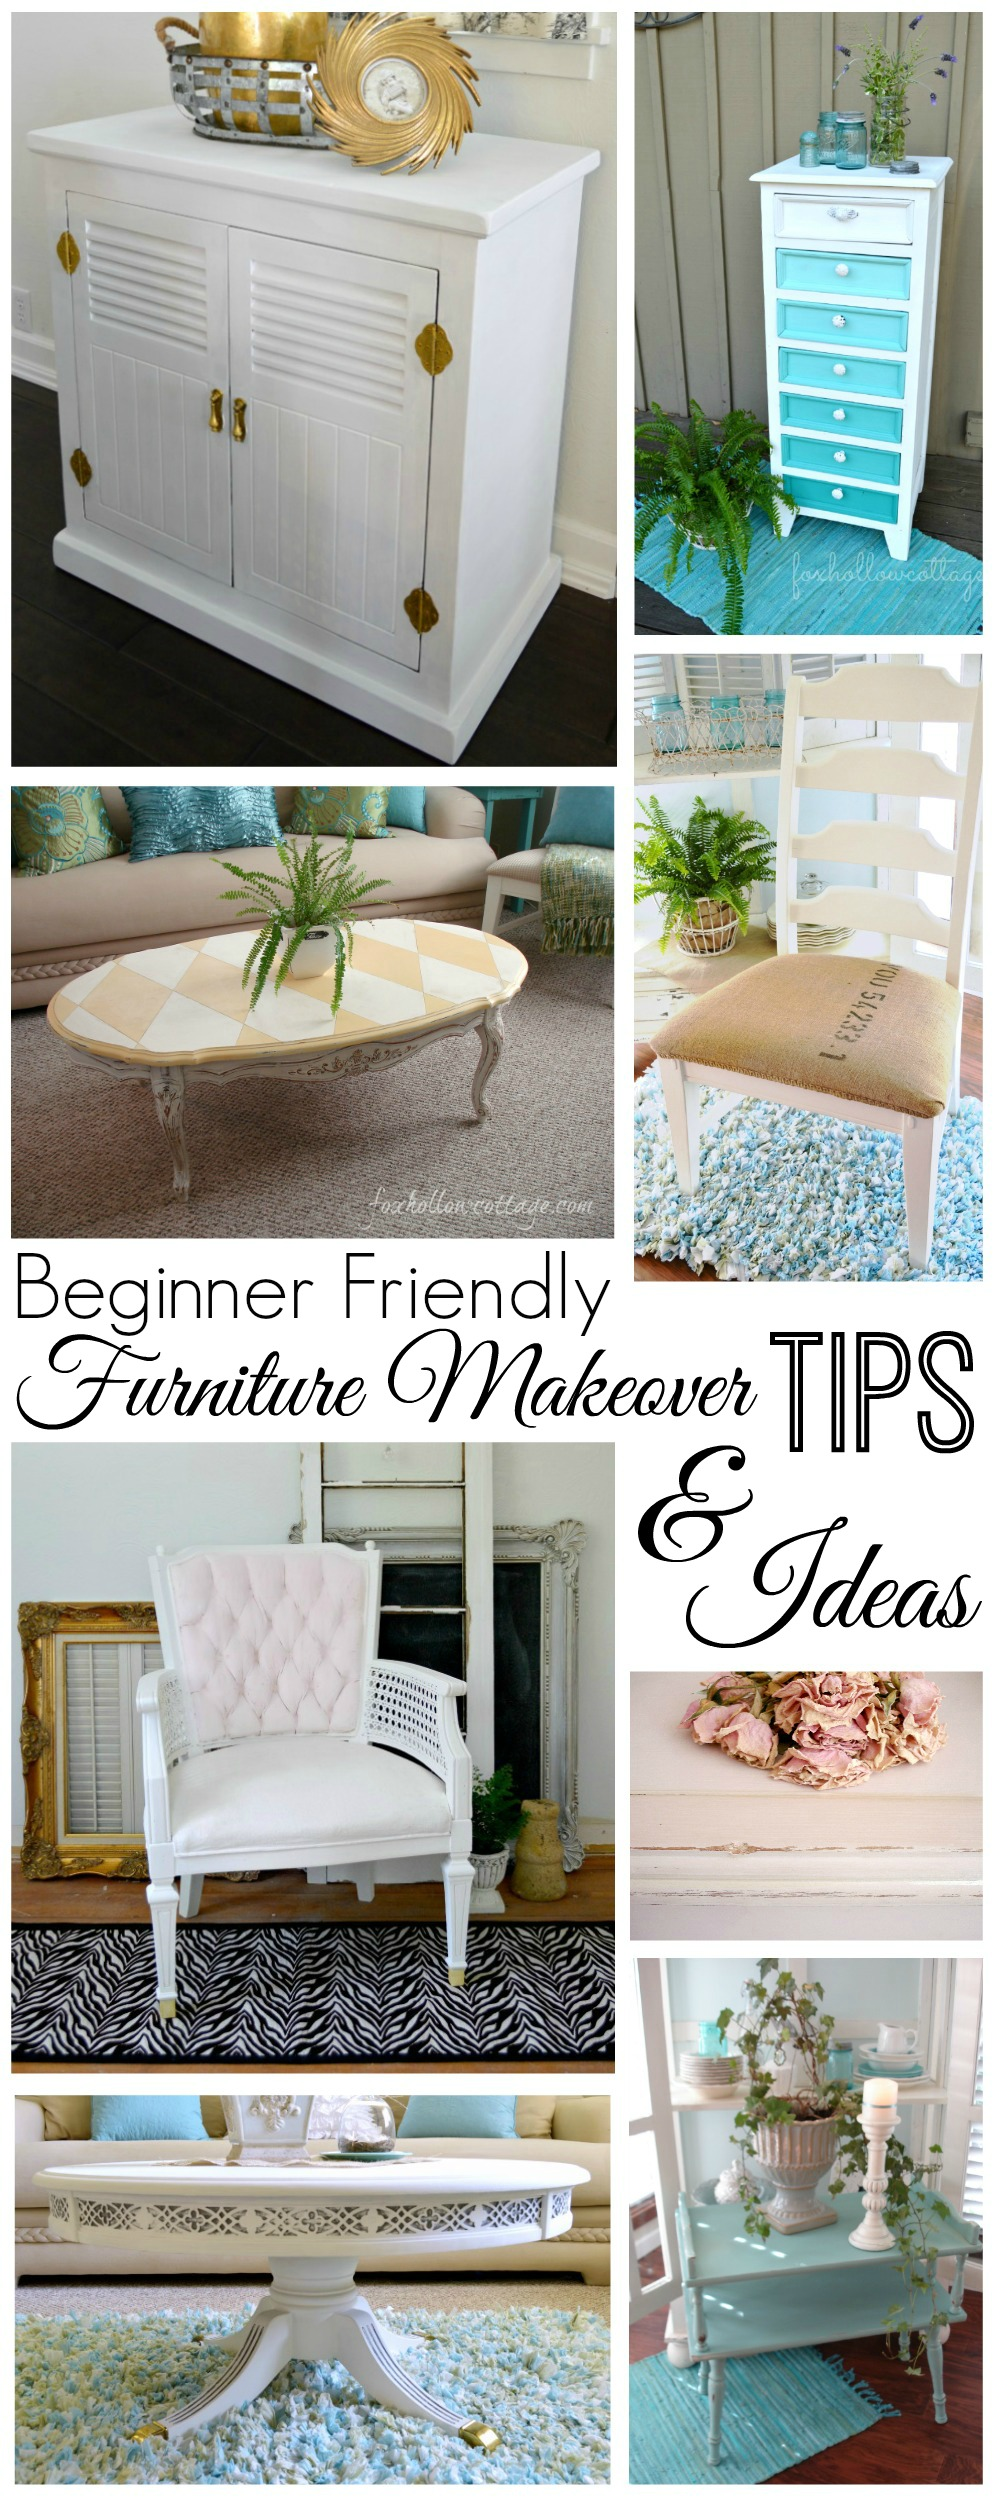 DIY Painted Furniture Makeover Ideas